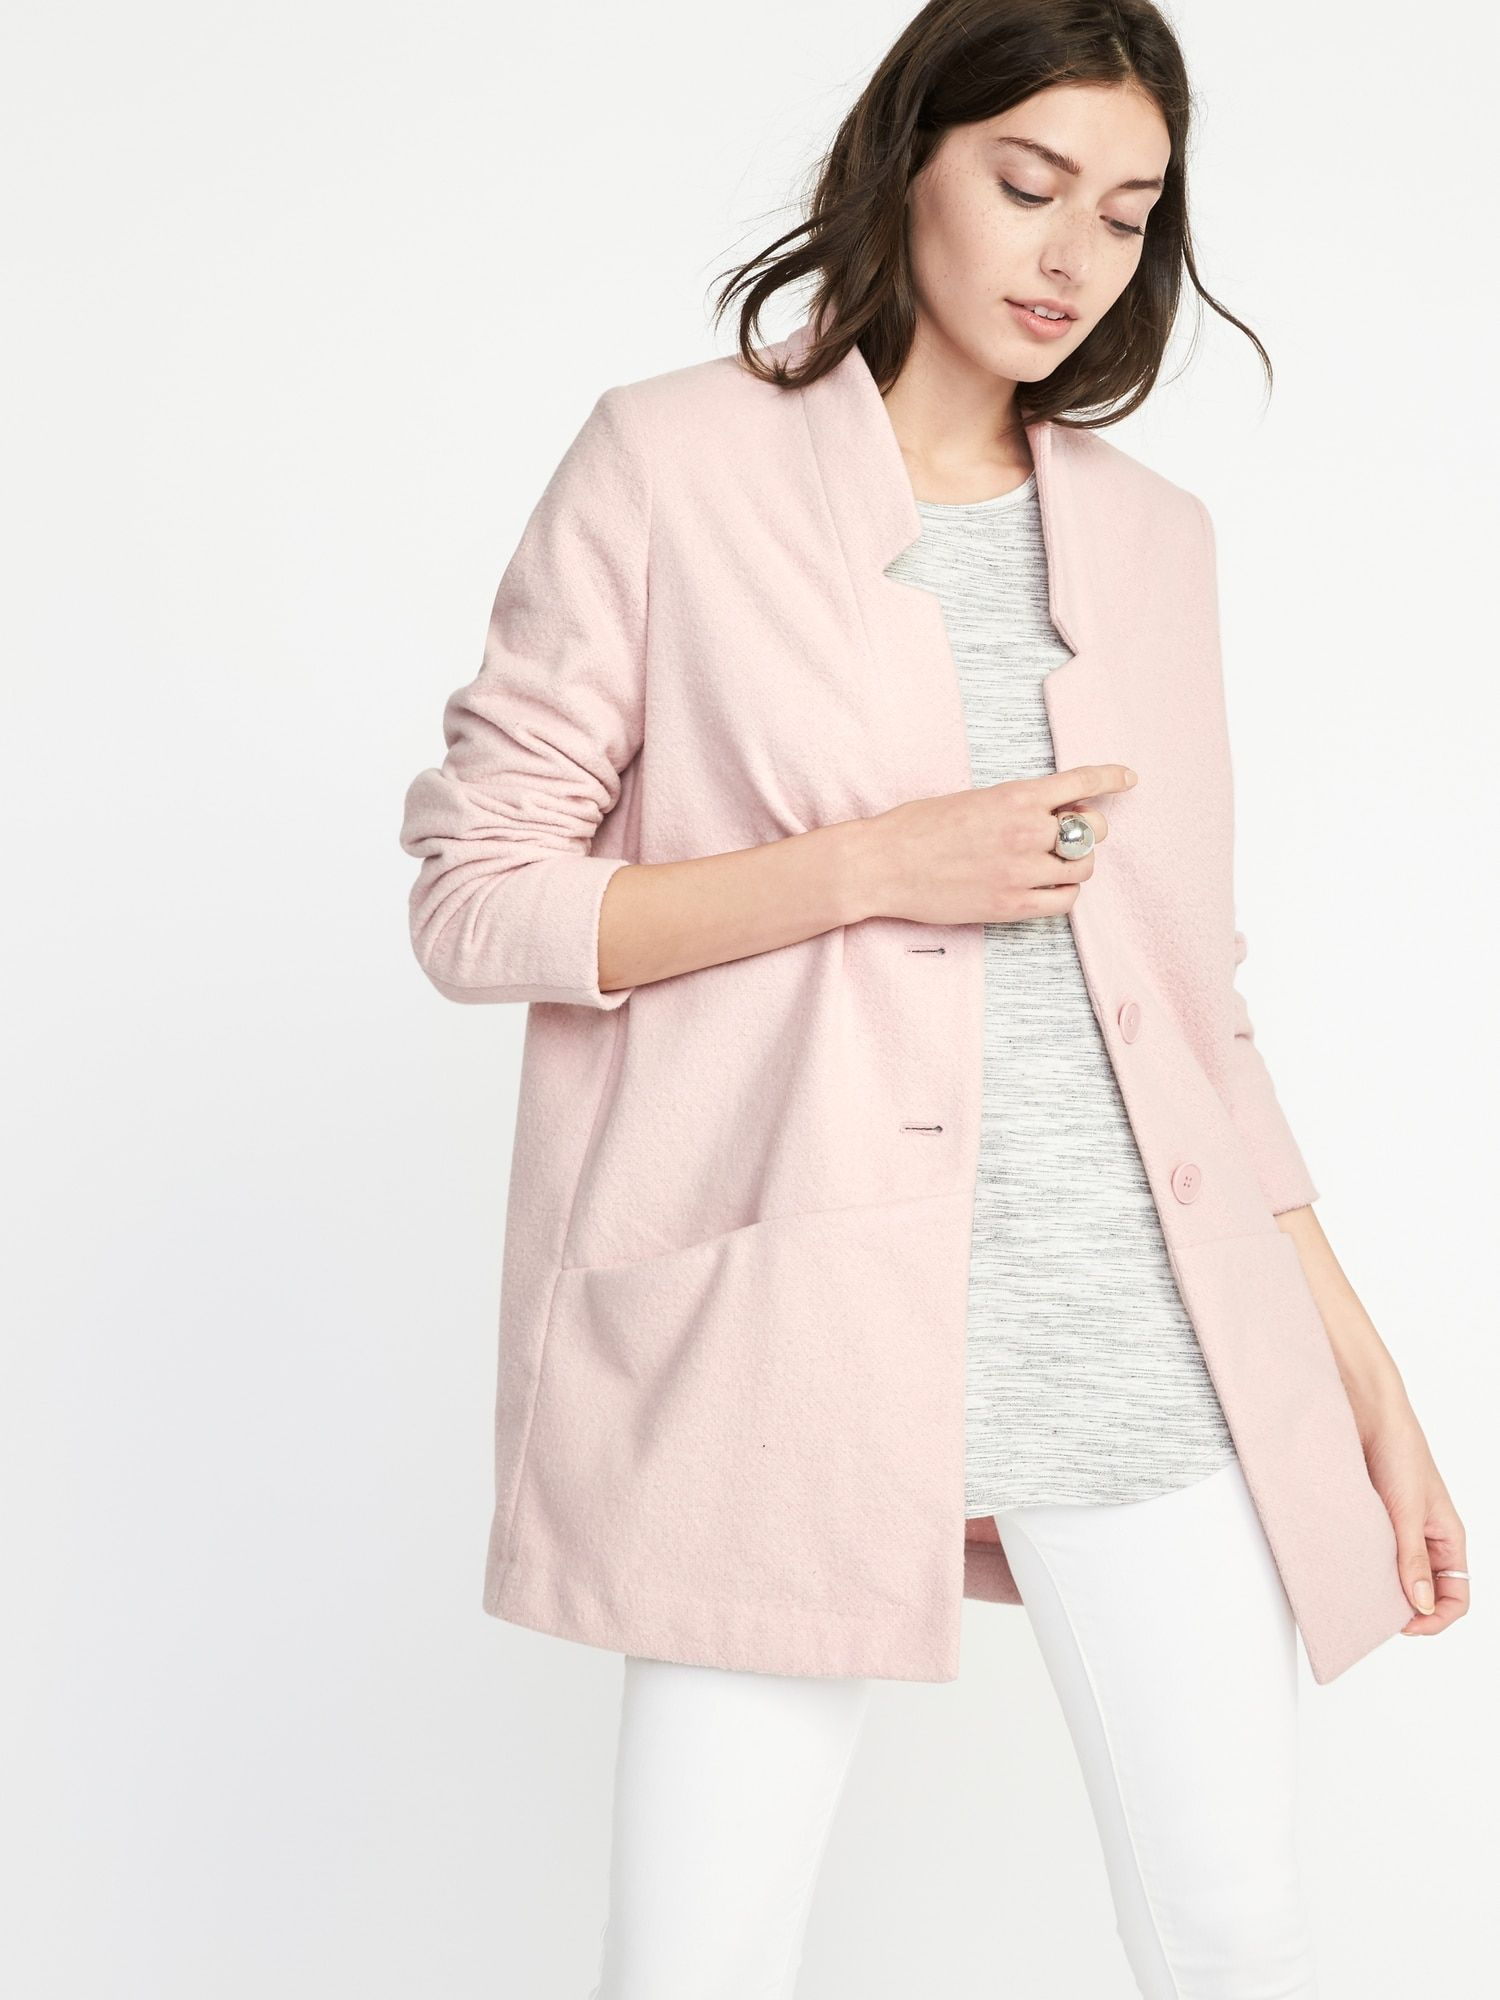 45 Affordable Pink Everyday Coat For Women Transition Outfits Spring Transition Outfit Women Outerwear Jacket [ 2000 x 1500 Pixel ]